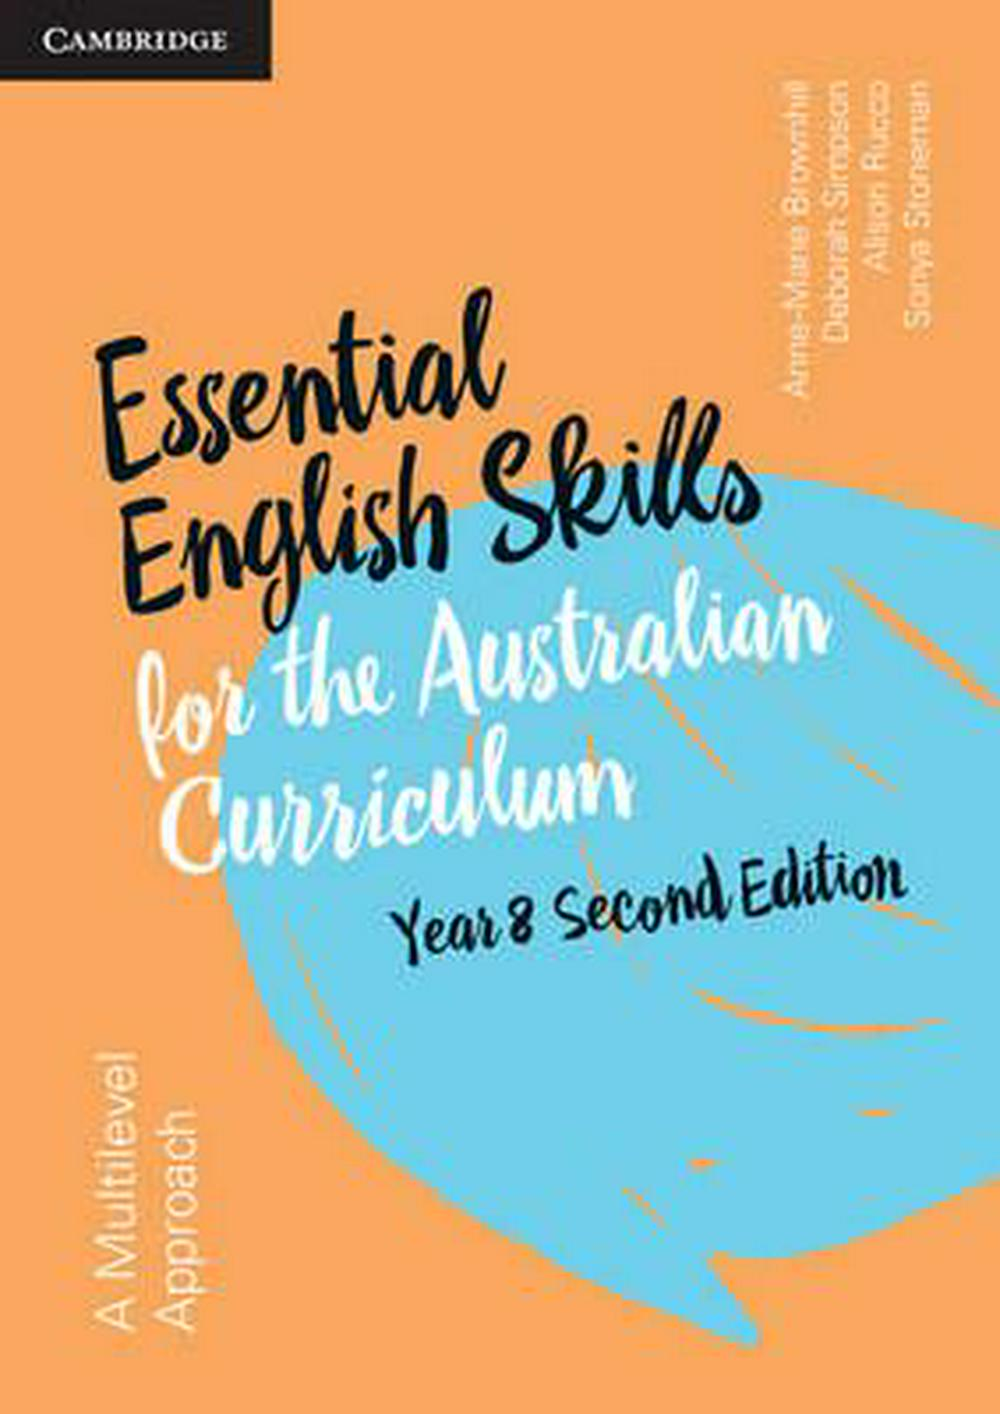 Essential English Skills for the Australian Curriculum Year 8 2nd Edition: A multi-level approach